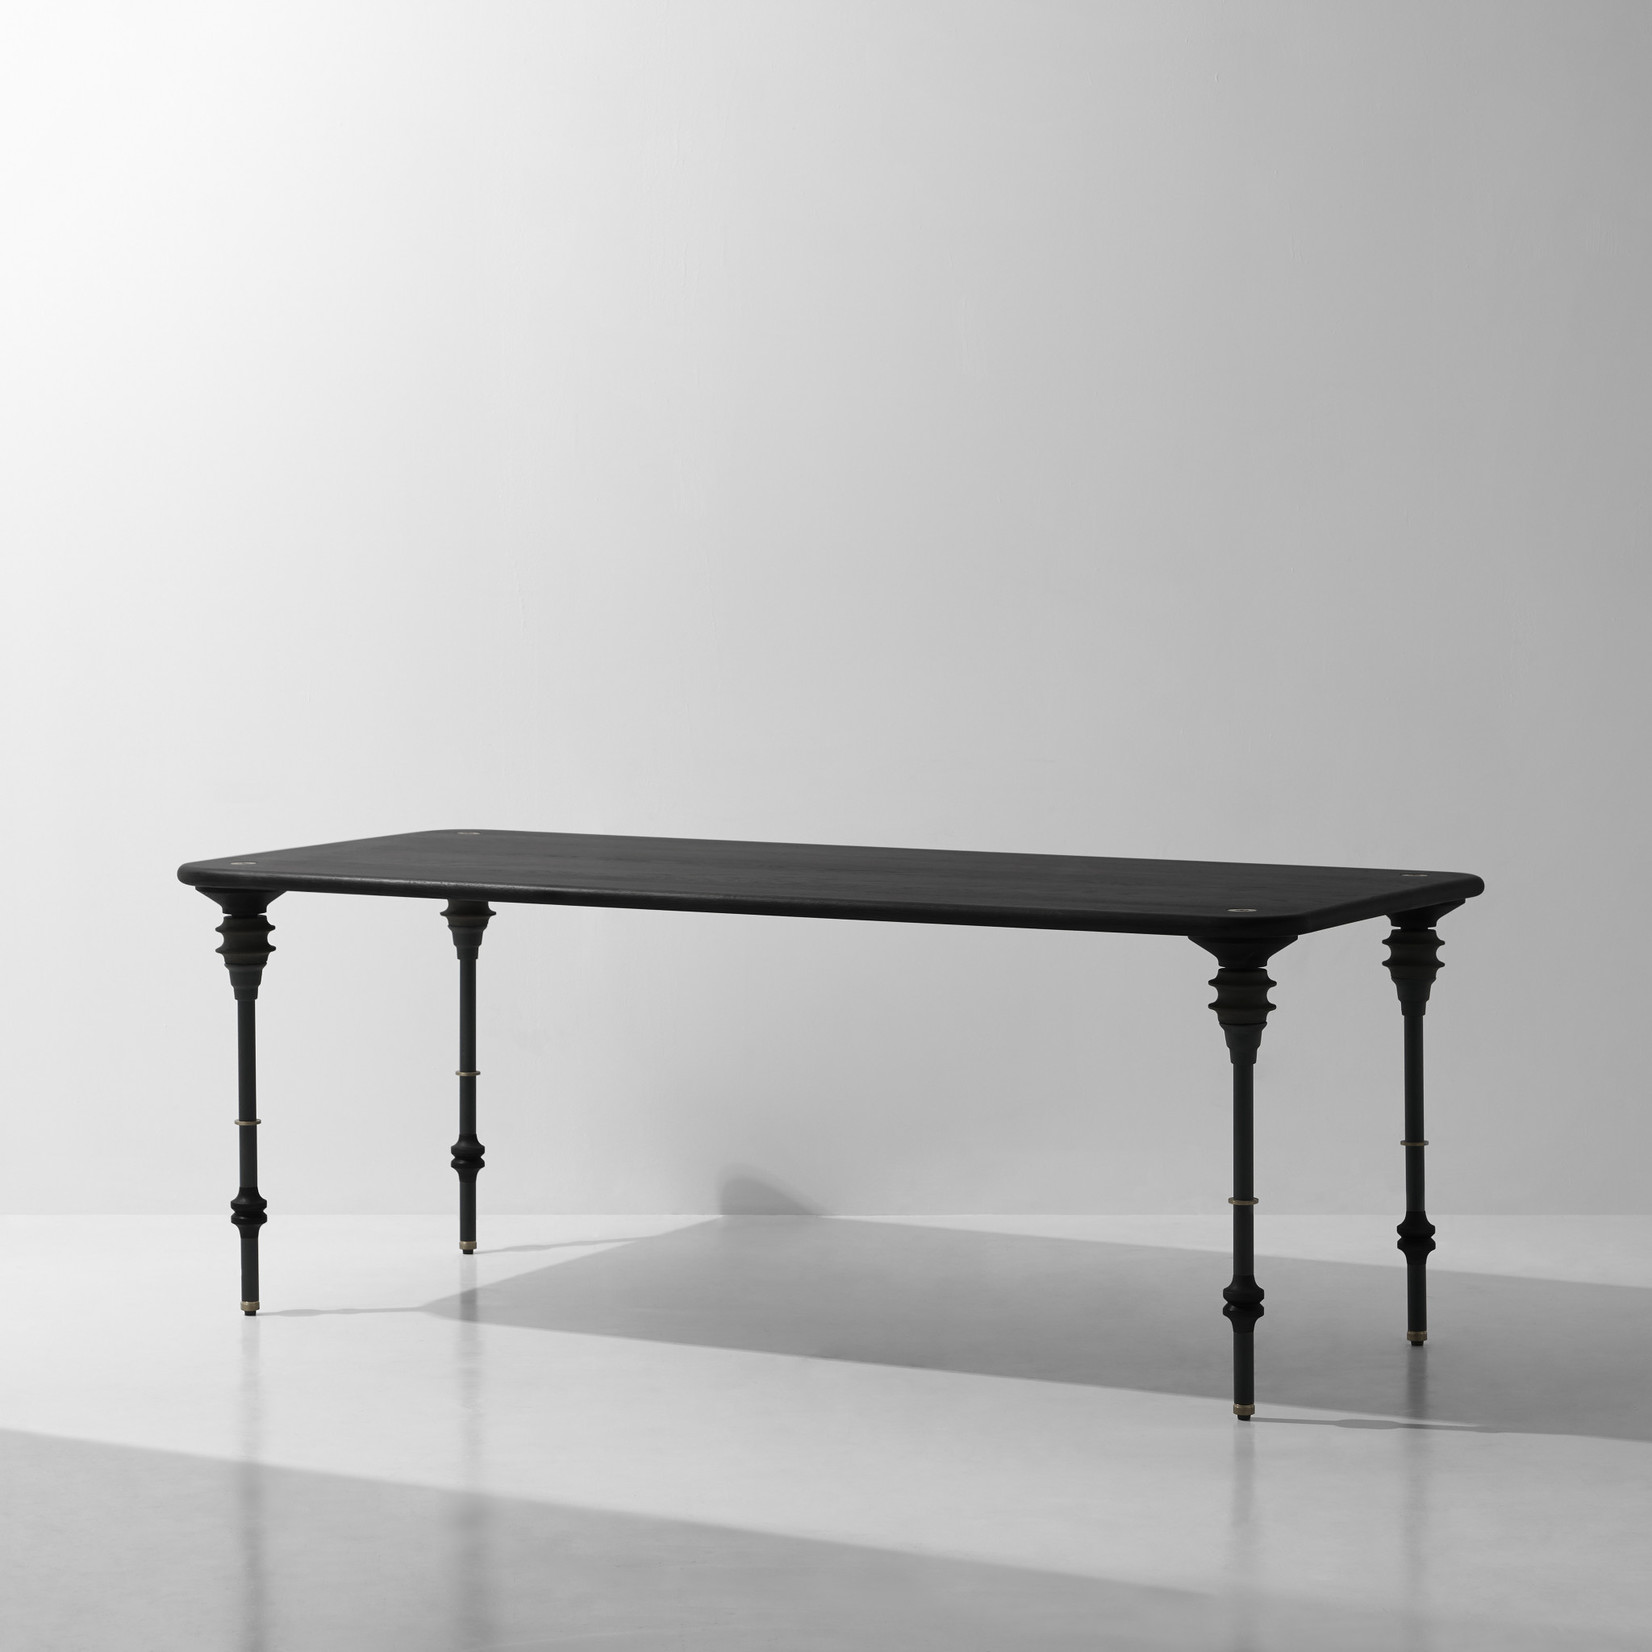 DISTRICT EIGHT KIMBELL DINING TABLE